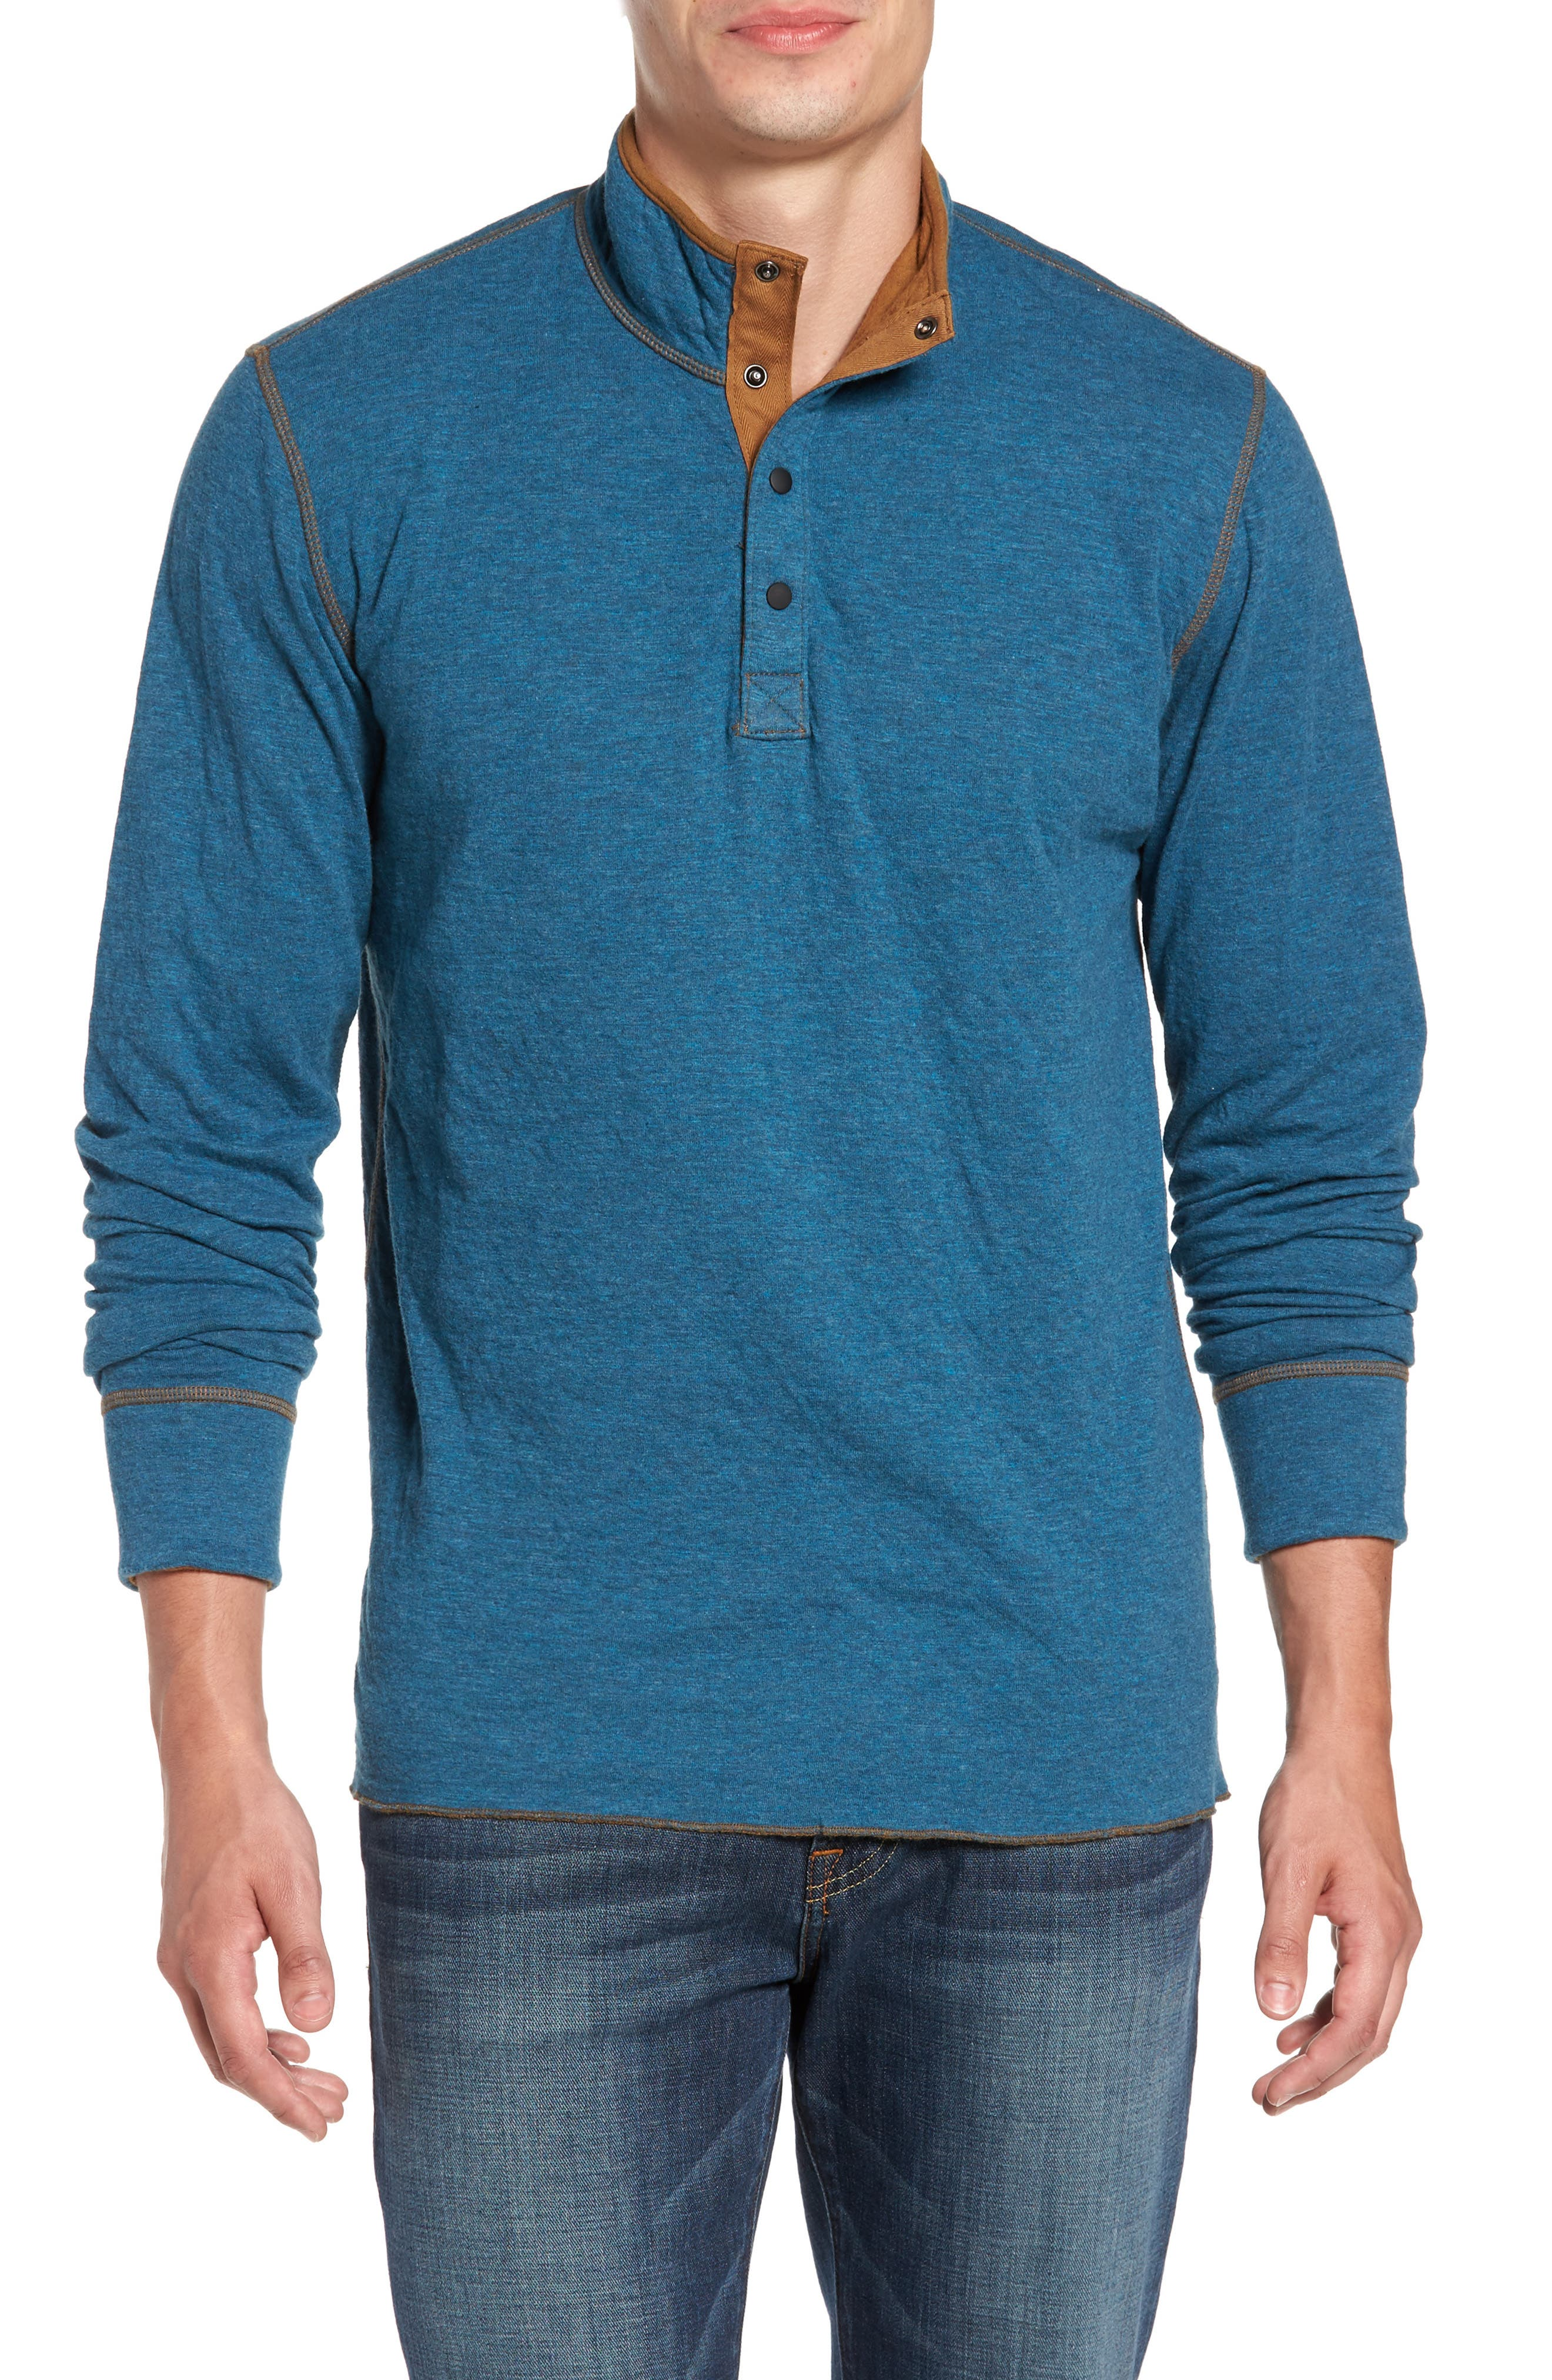 Jeremiah Mitch Reversible Slubbed Quarter Snap Pullover